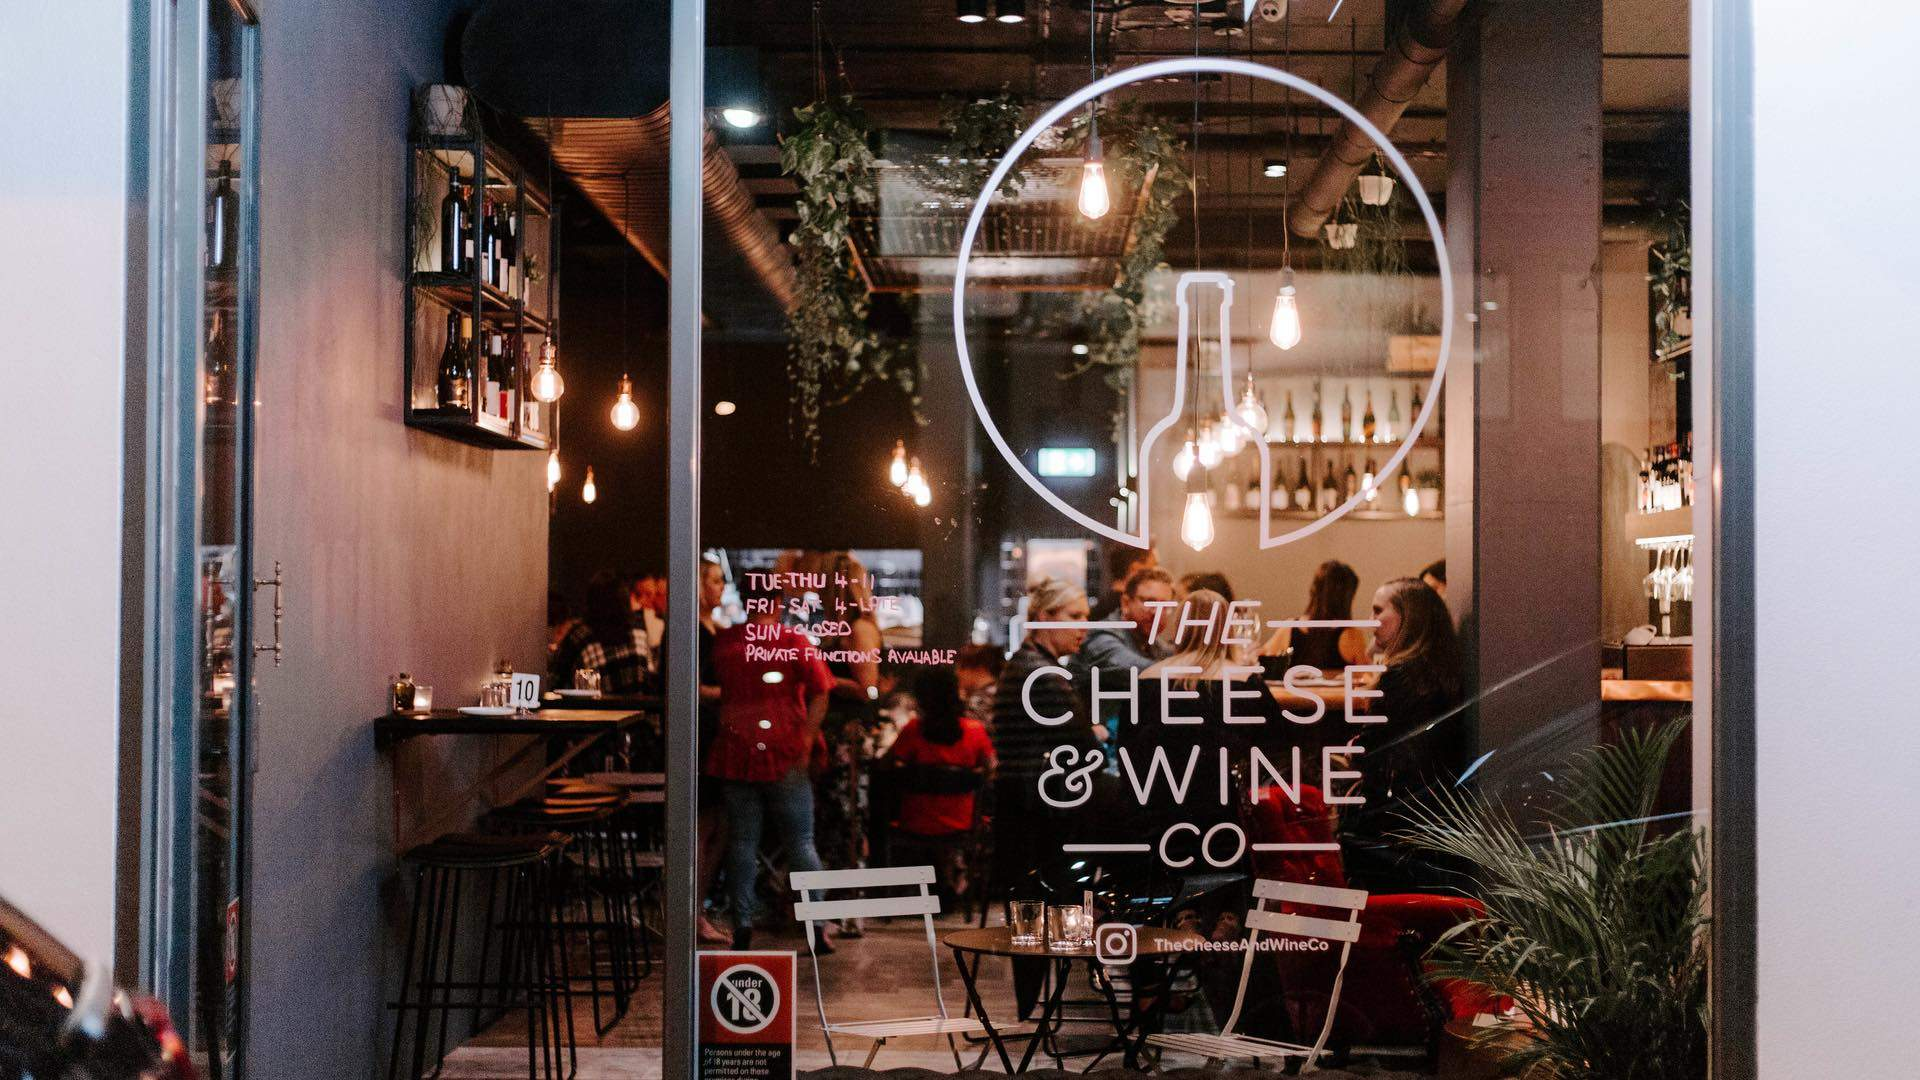 The Cheese & Wine Co.